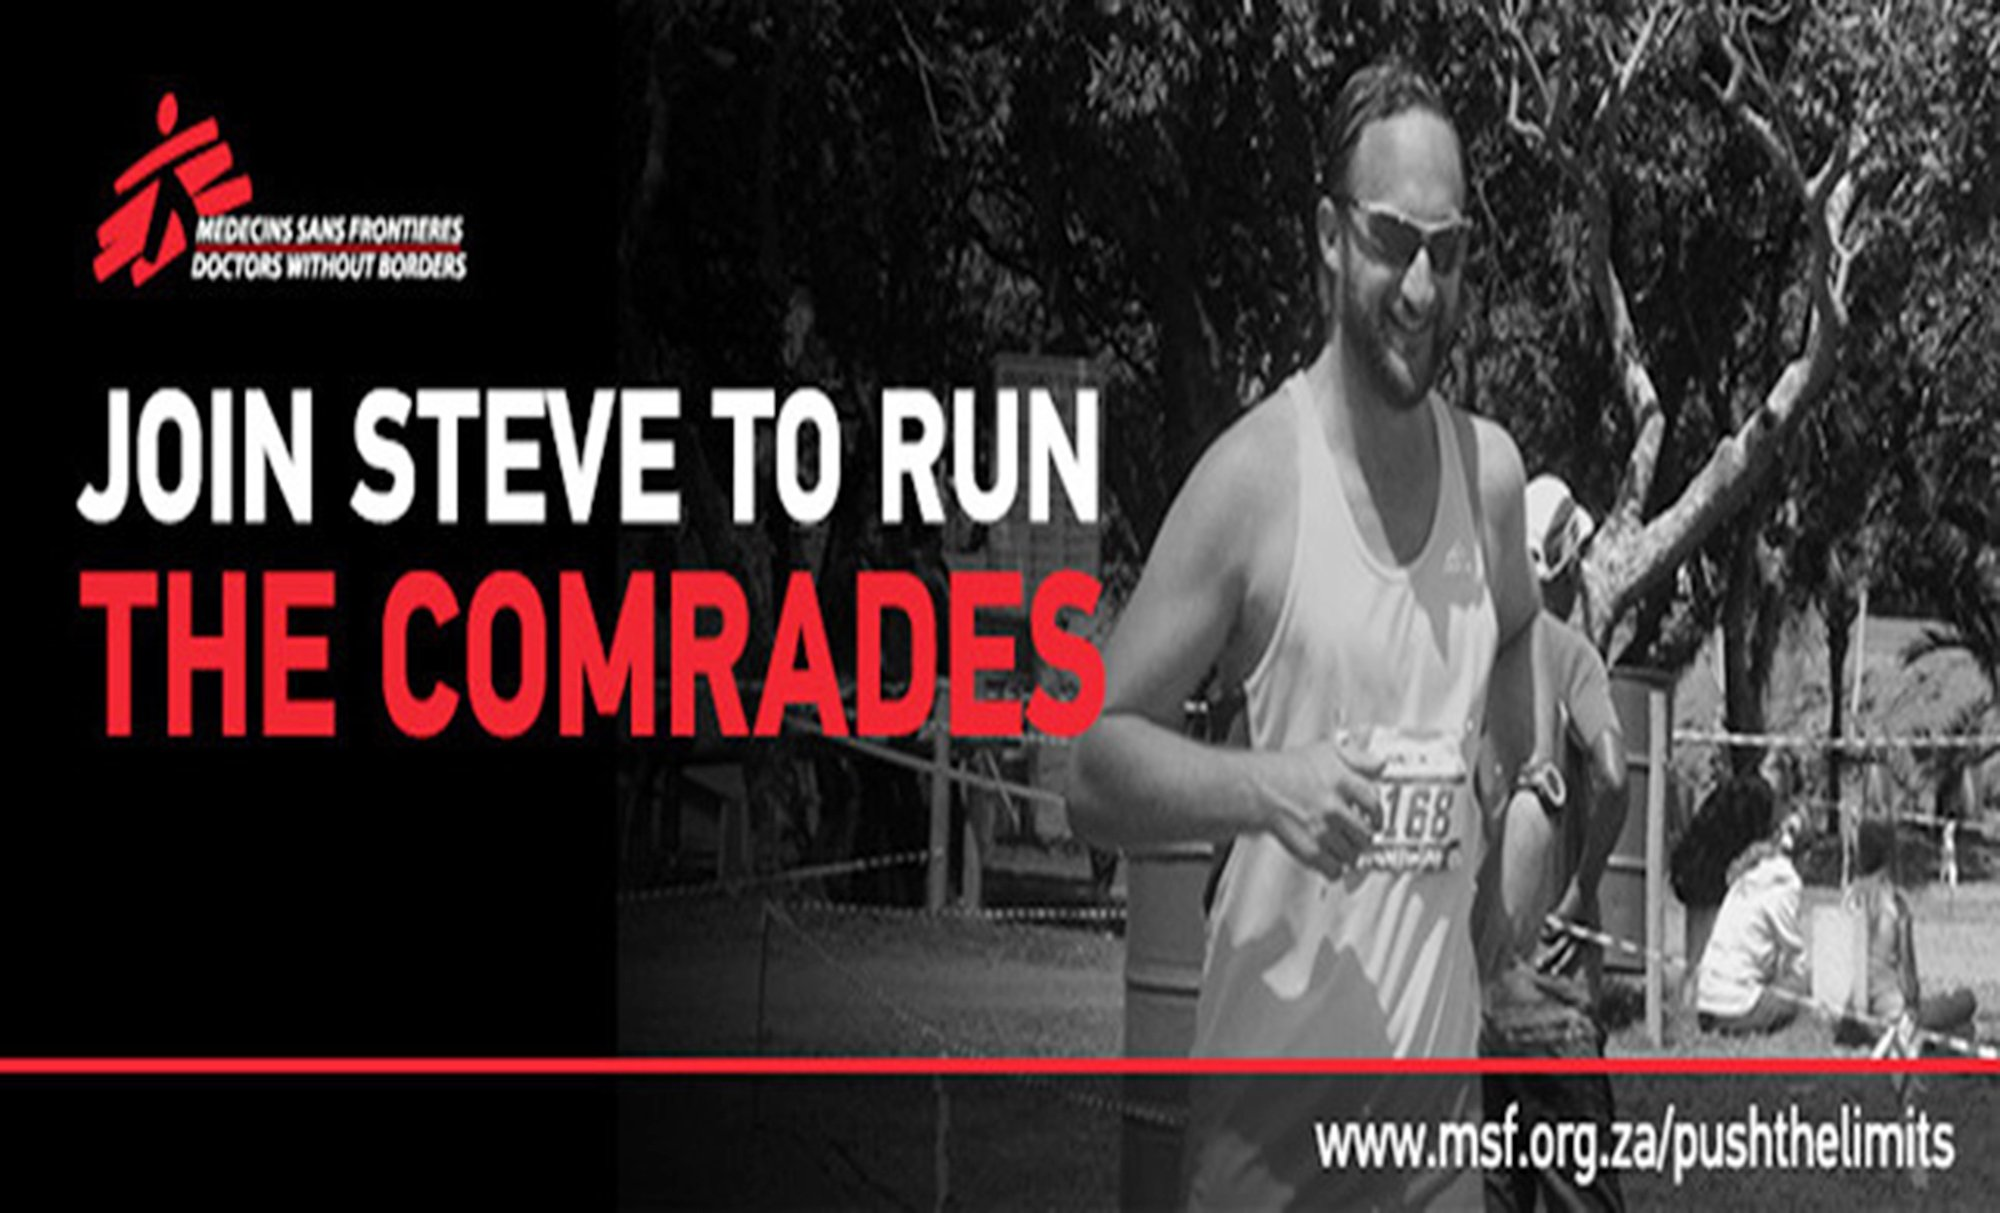 Steve Miller to run the Comrades Marathon